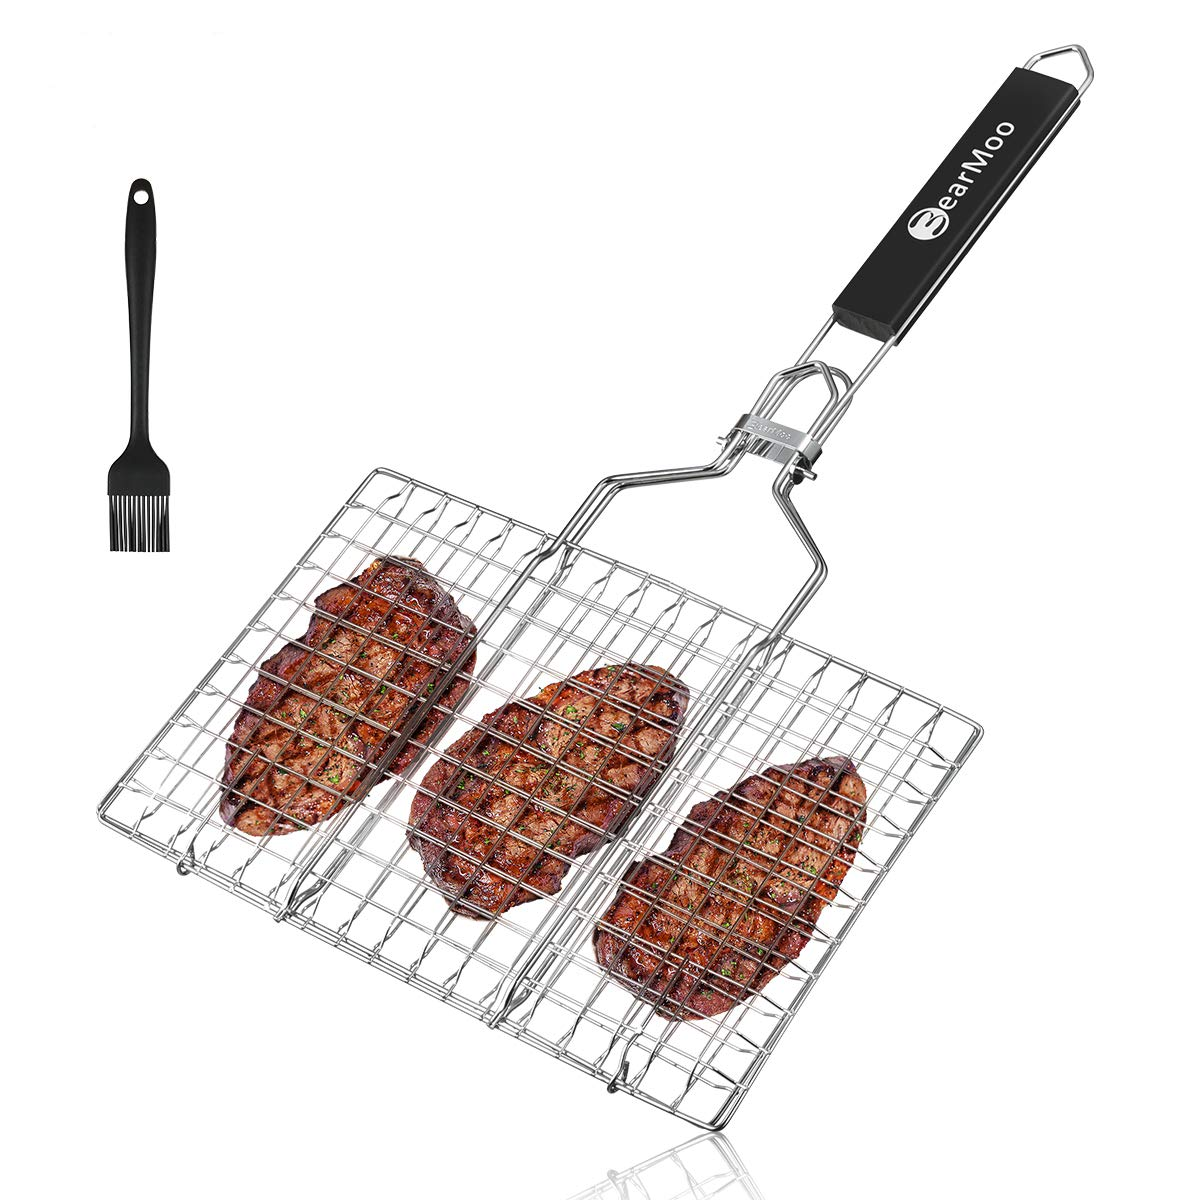 BearMoo Portable Stainless Steel BBQ Barbecue Grilling Basket with Removeable Handle for Fish, Vegetables, Steak, Shrimp, Meat, Food. Useful BBQ Tool【Bonus an Additional Sauce Brush + Carrying Pouch】